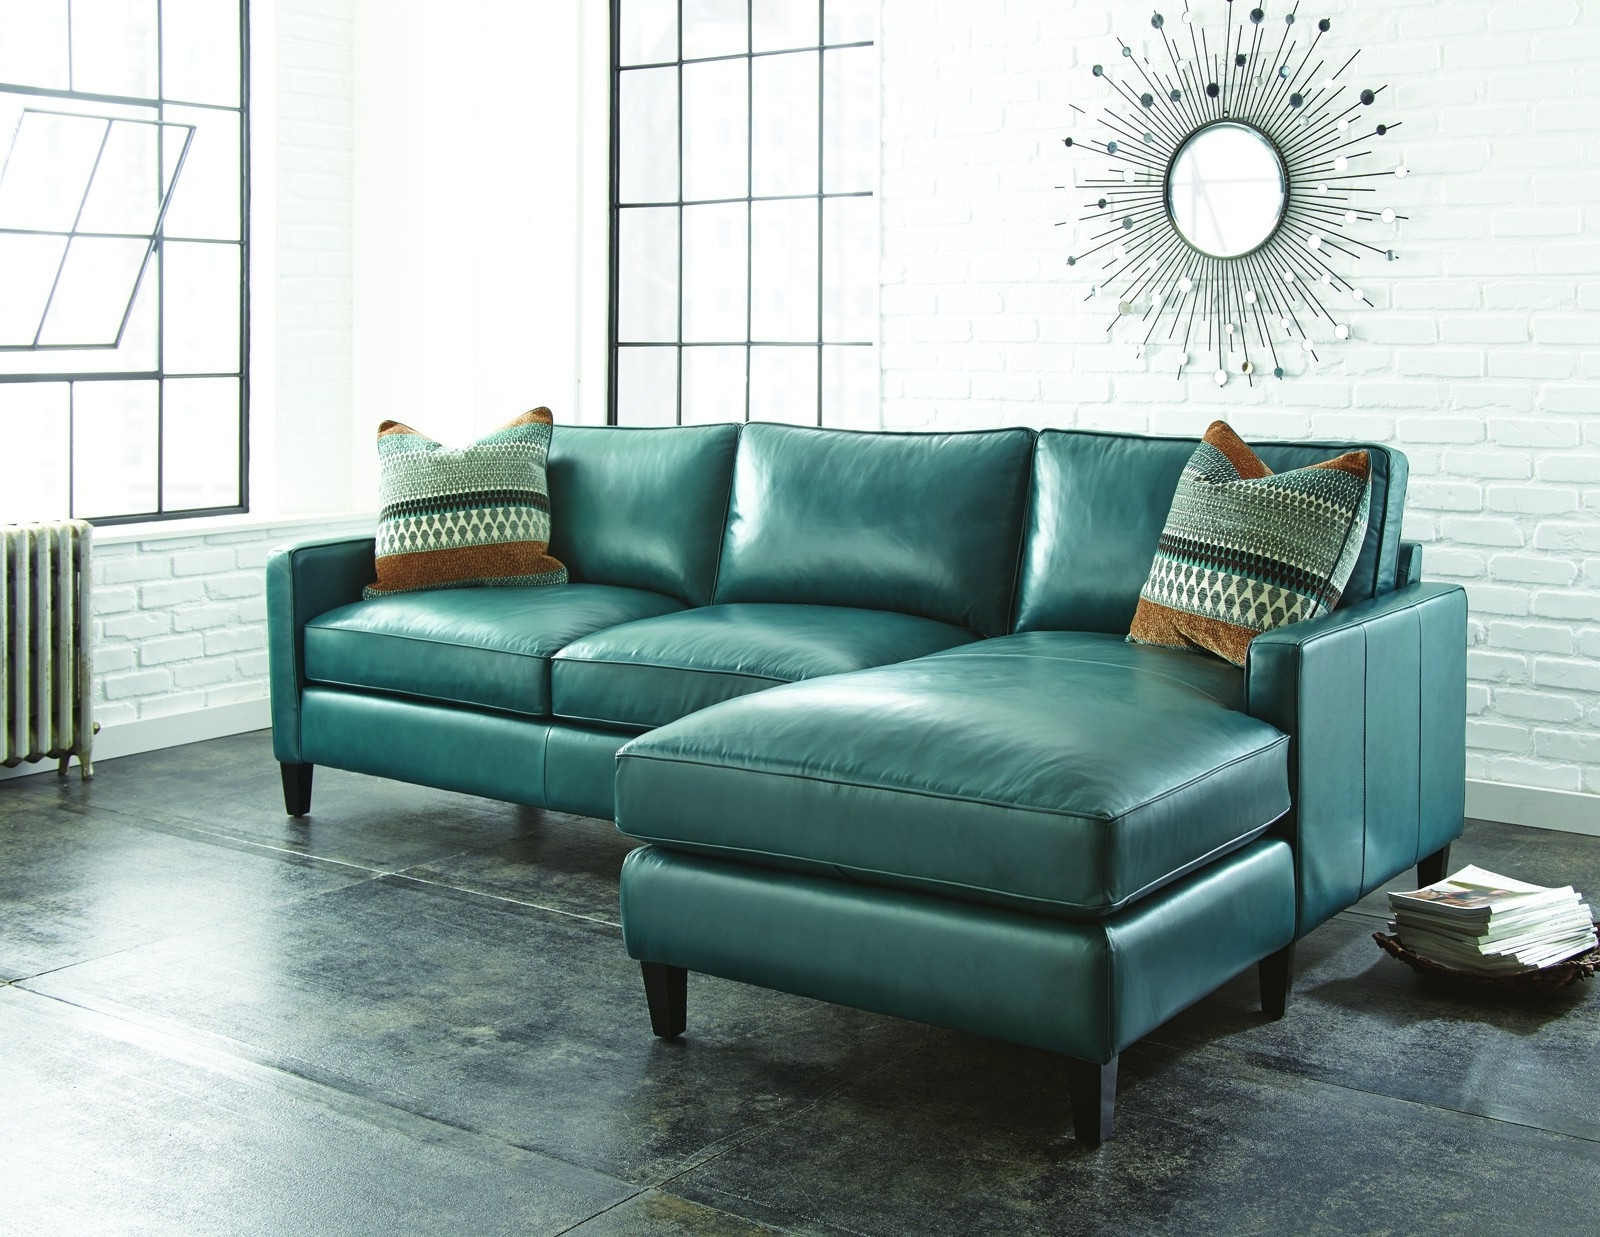 New Ideas Green Leather Sectional Sofa And Would You Put This Teal With Regard To Most Current Media Room Sectional Sofas (View 8 of 20)